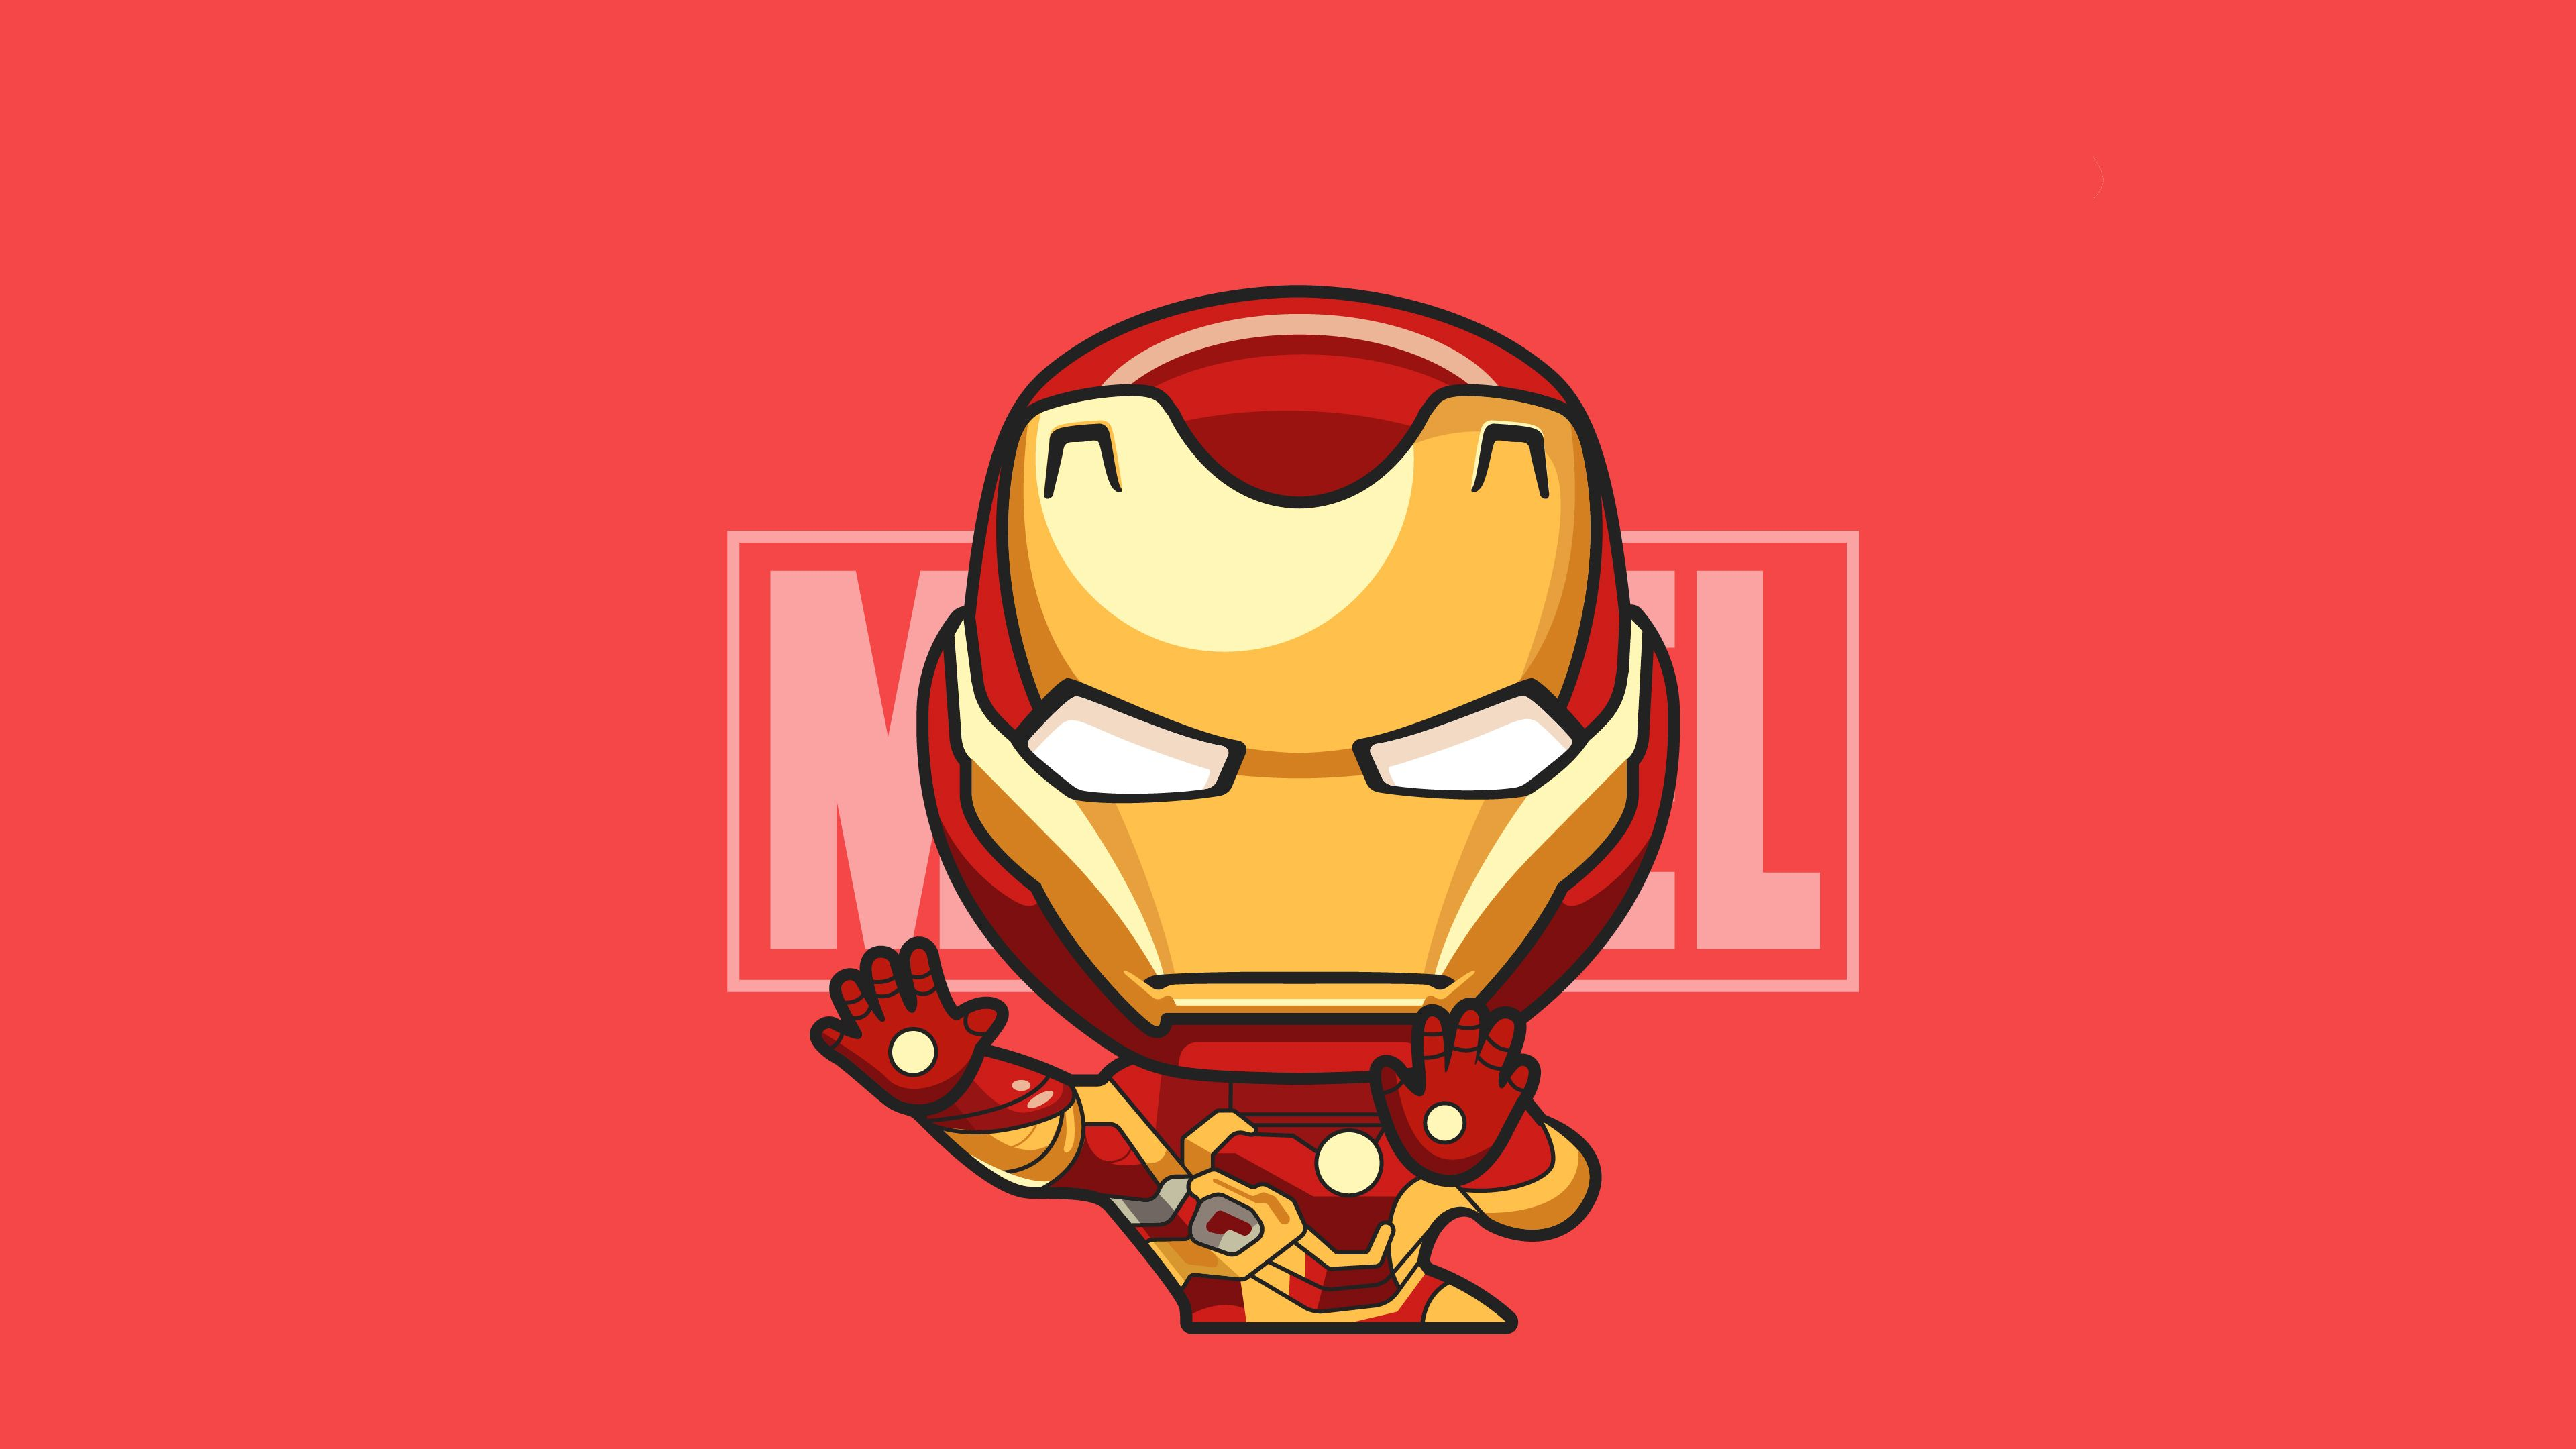 Iron Man Illustration Art 4k Superheroes Wallpapers Iron Man Wallpapers Illustration Wallpapers Hd Wallpapers Man Illustration Iron Man Iron Man Wallpaper